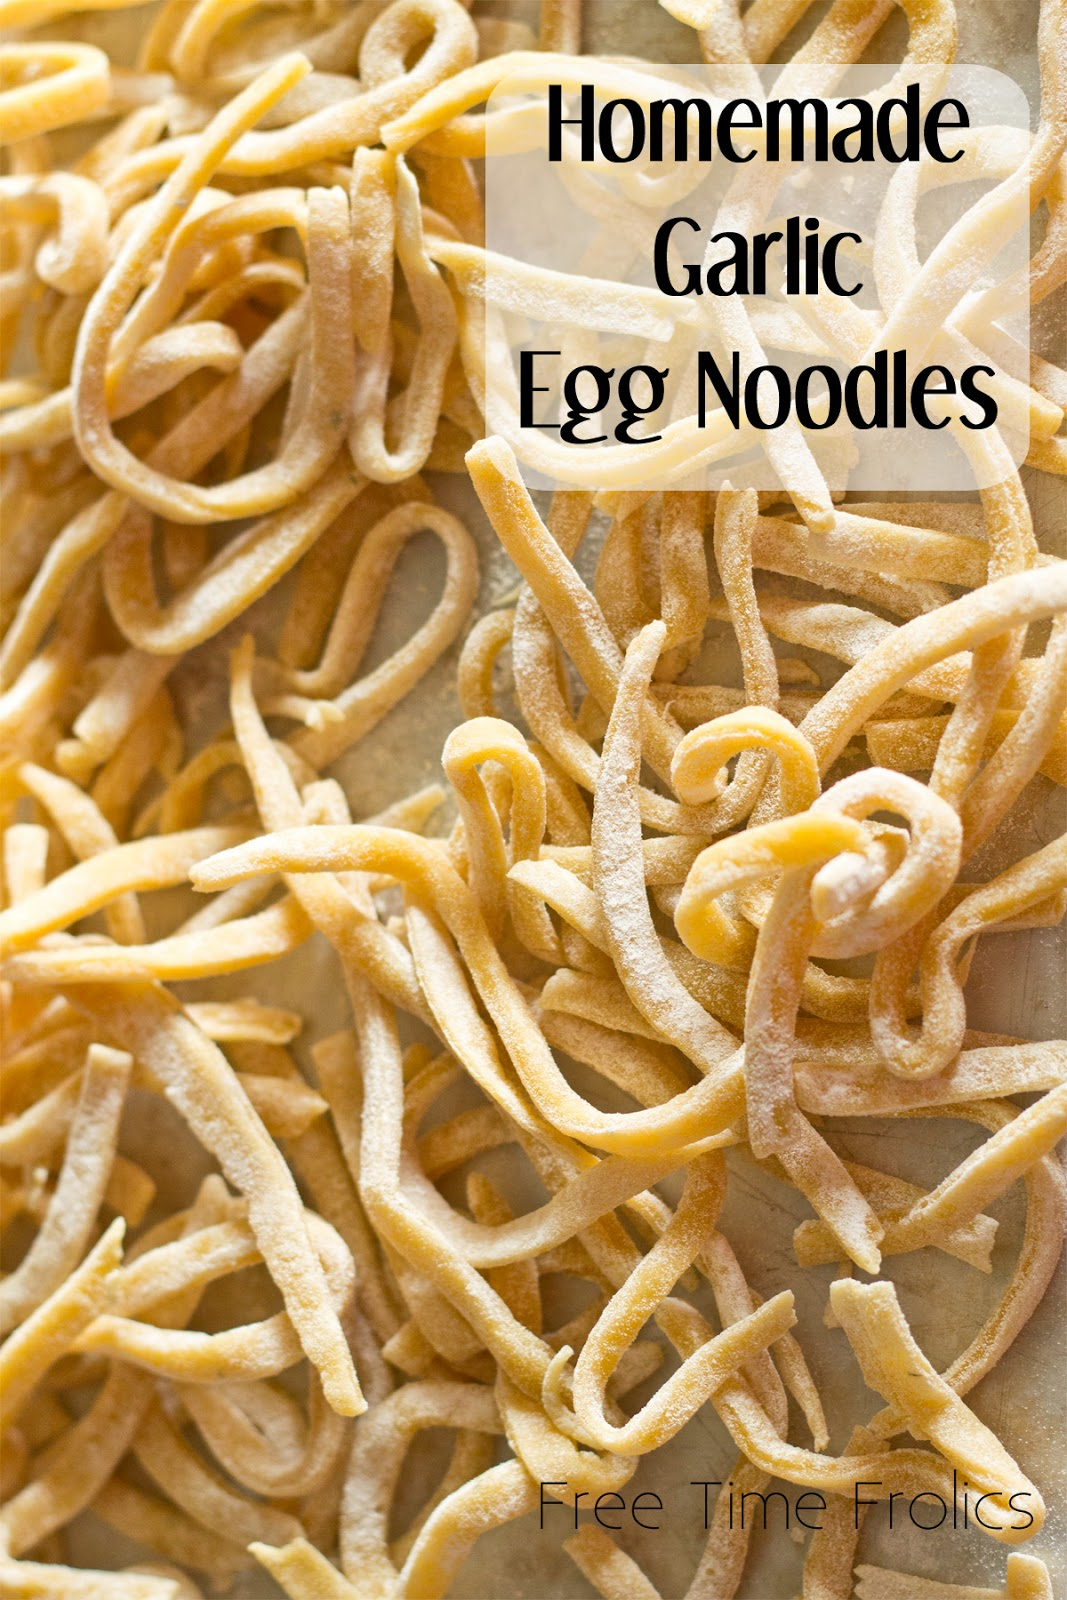 Homemade garlic egg noodles #recipe via www.freetimefrolics.com